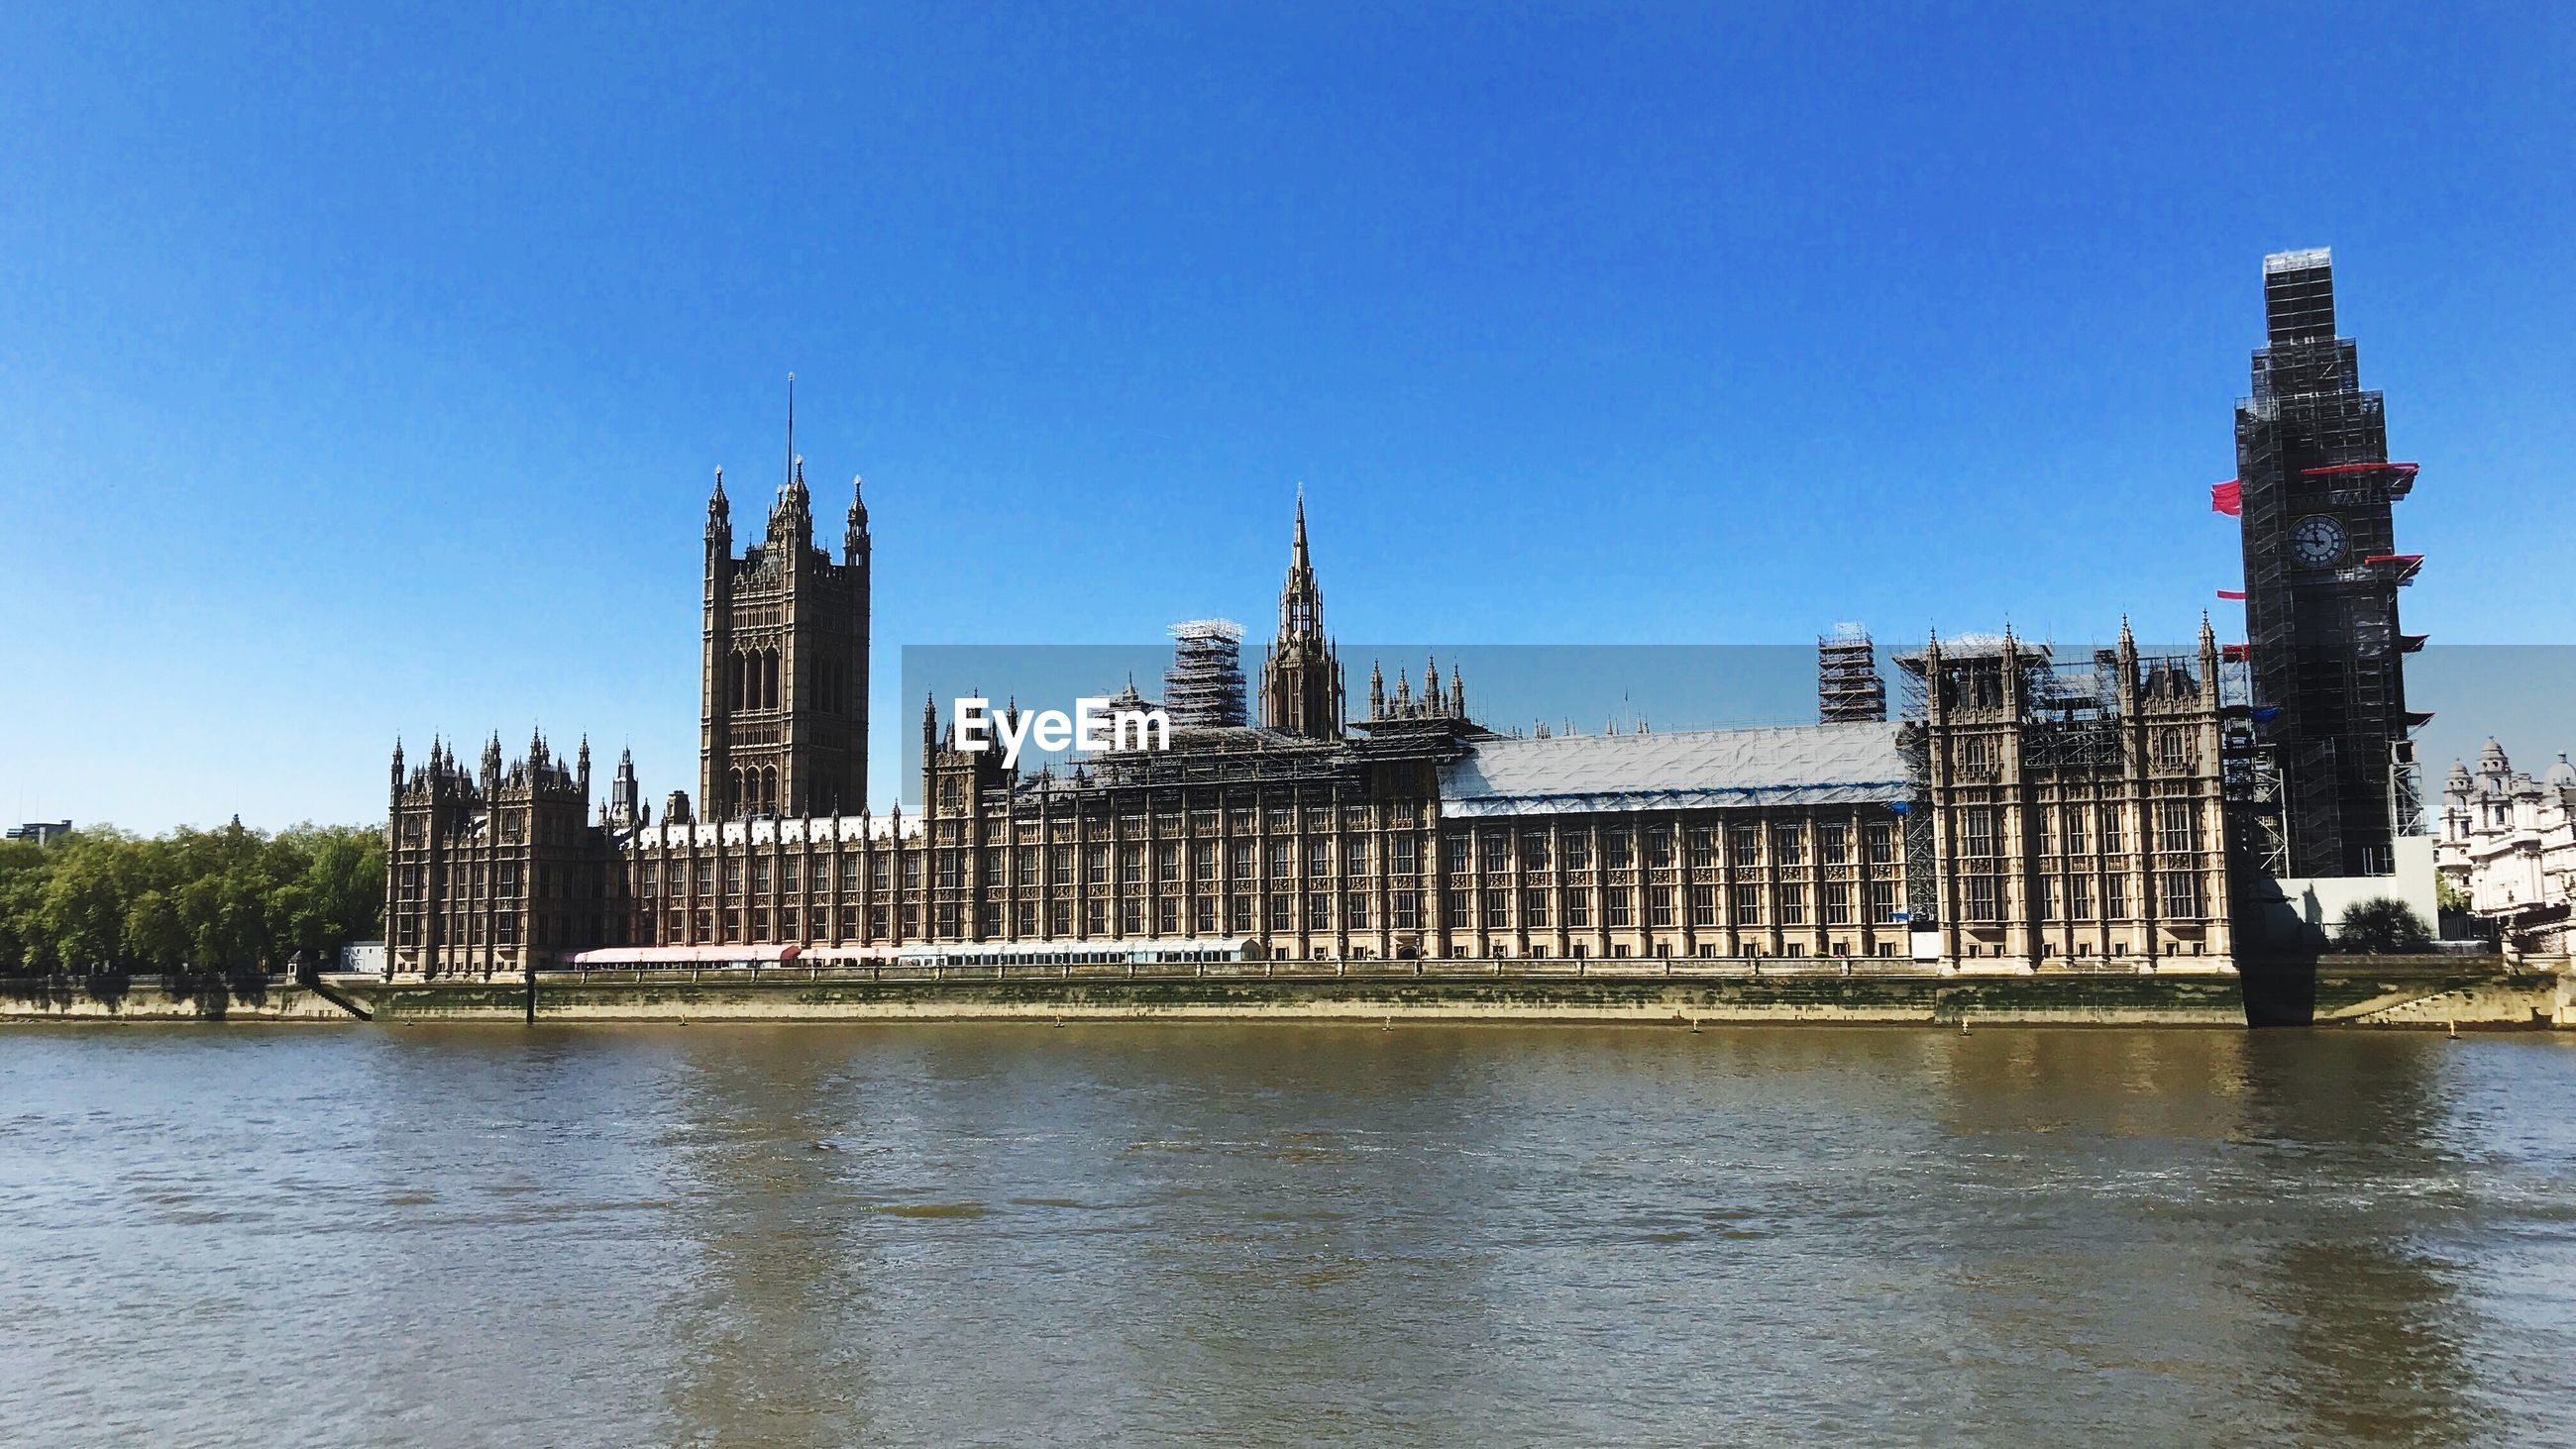 RIVER WITH BUILDINGS IN BACKGROUND AGAINST CLEAR BLUE SKY